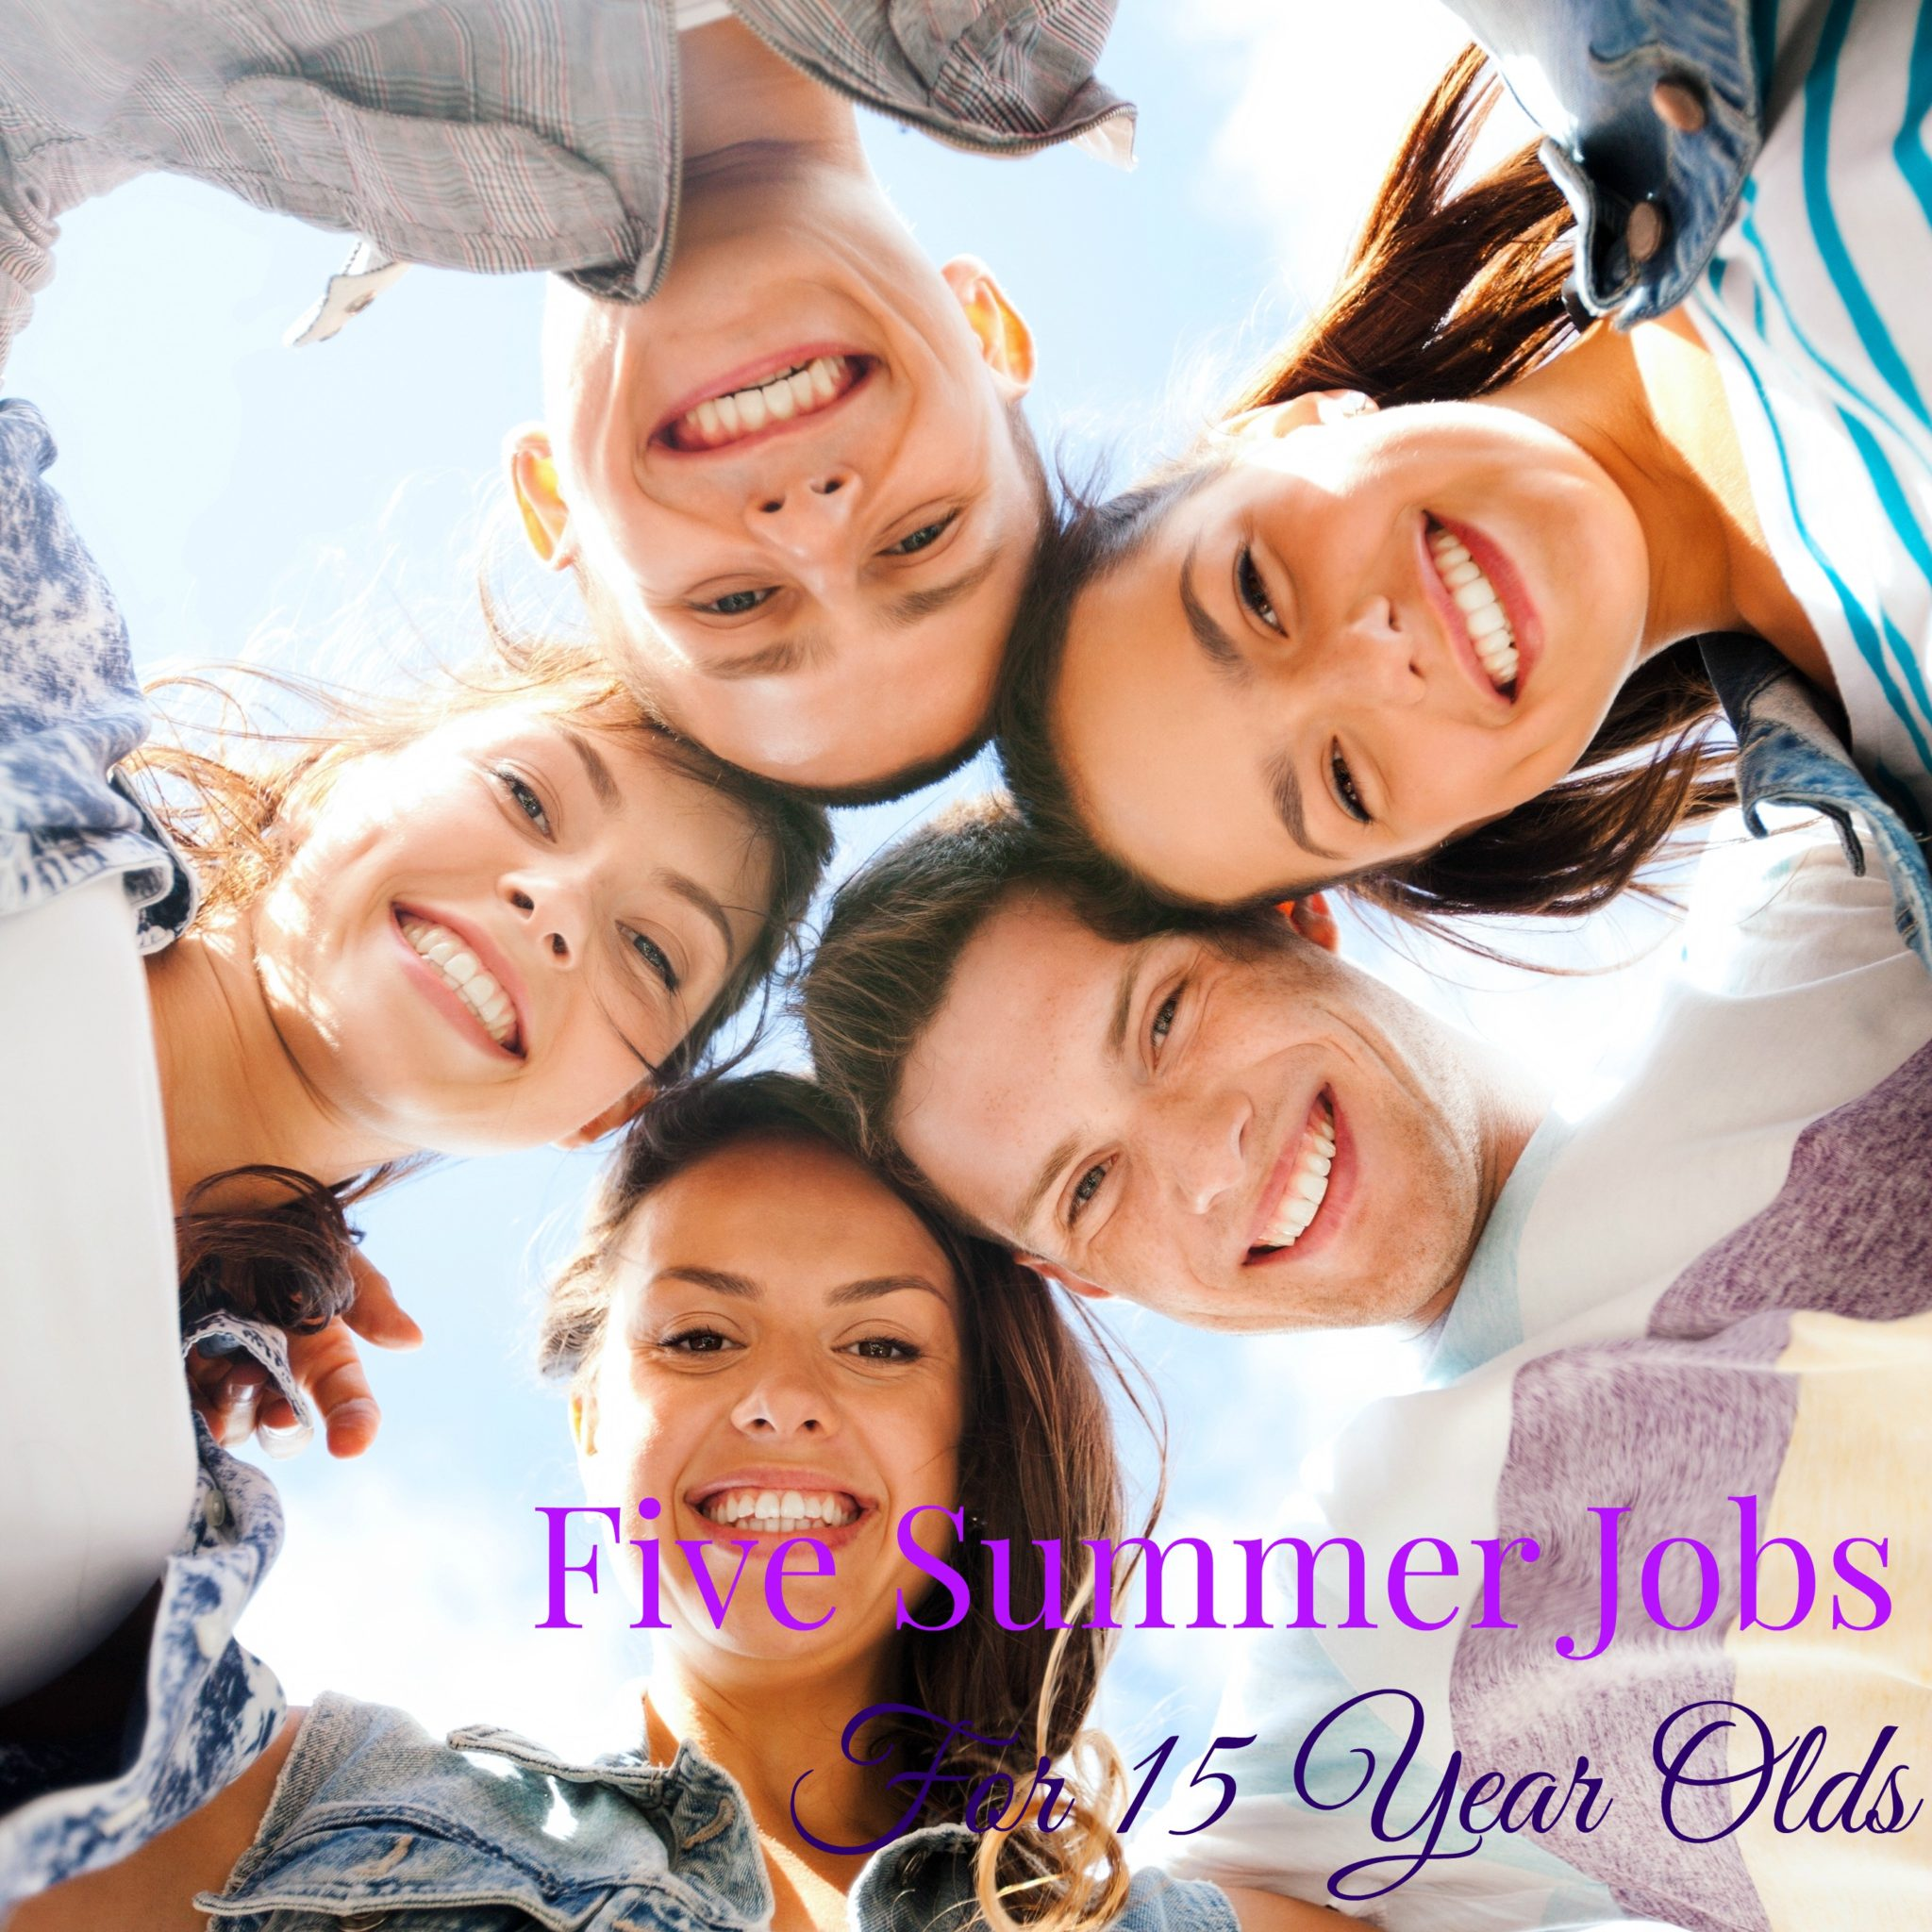 jobs for 15 year olds summer resume format for freshers resume jobs for 15 year olds summer jobs for 15 year olds hire teen five summer jobs